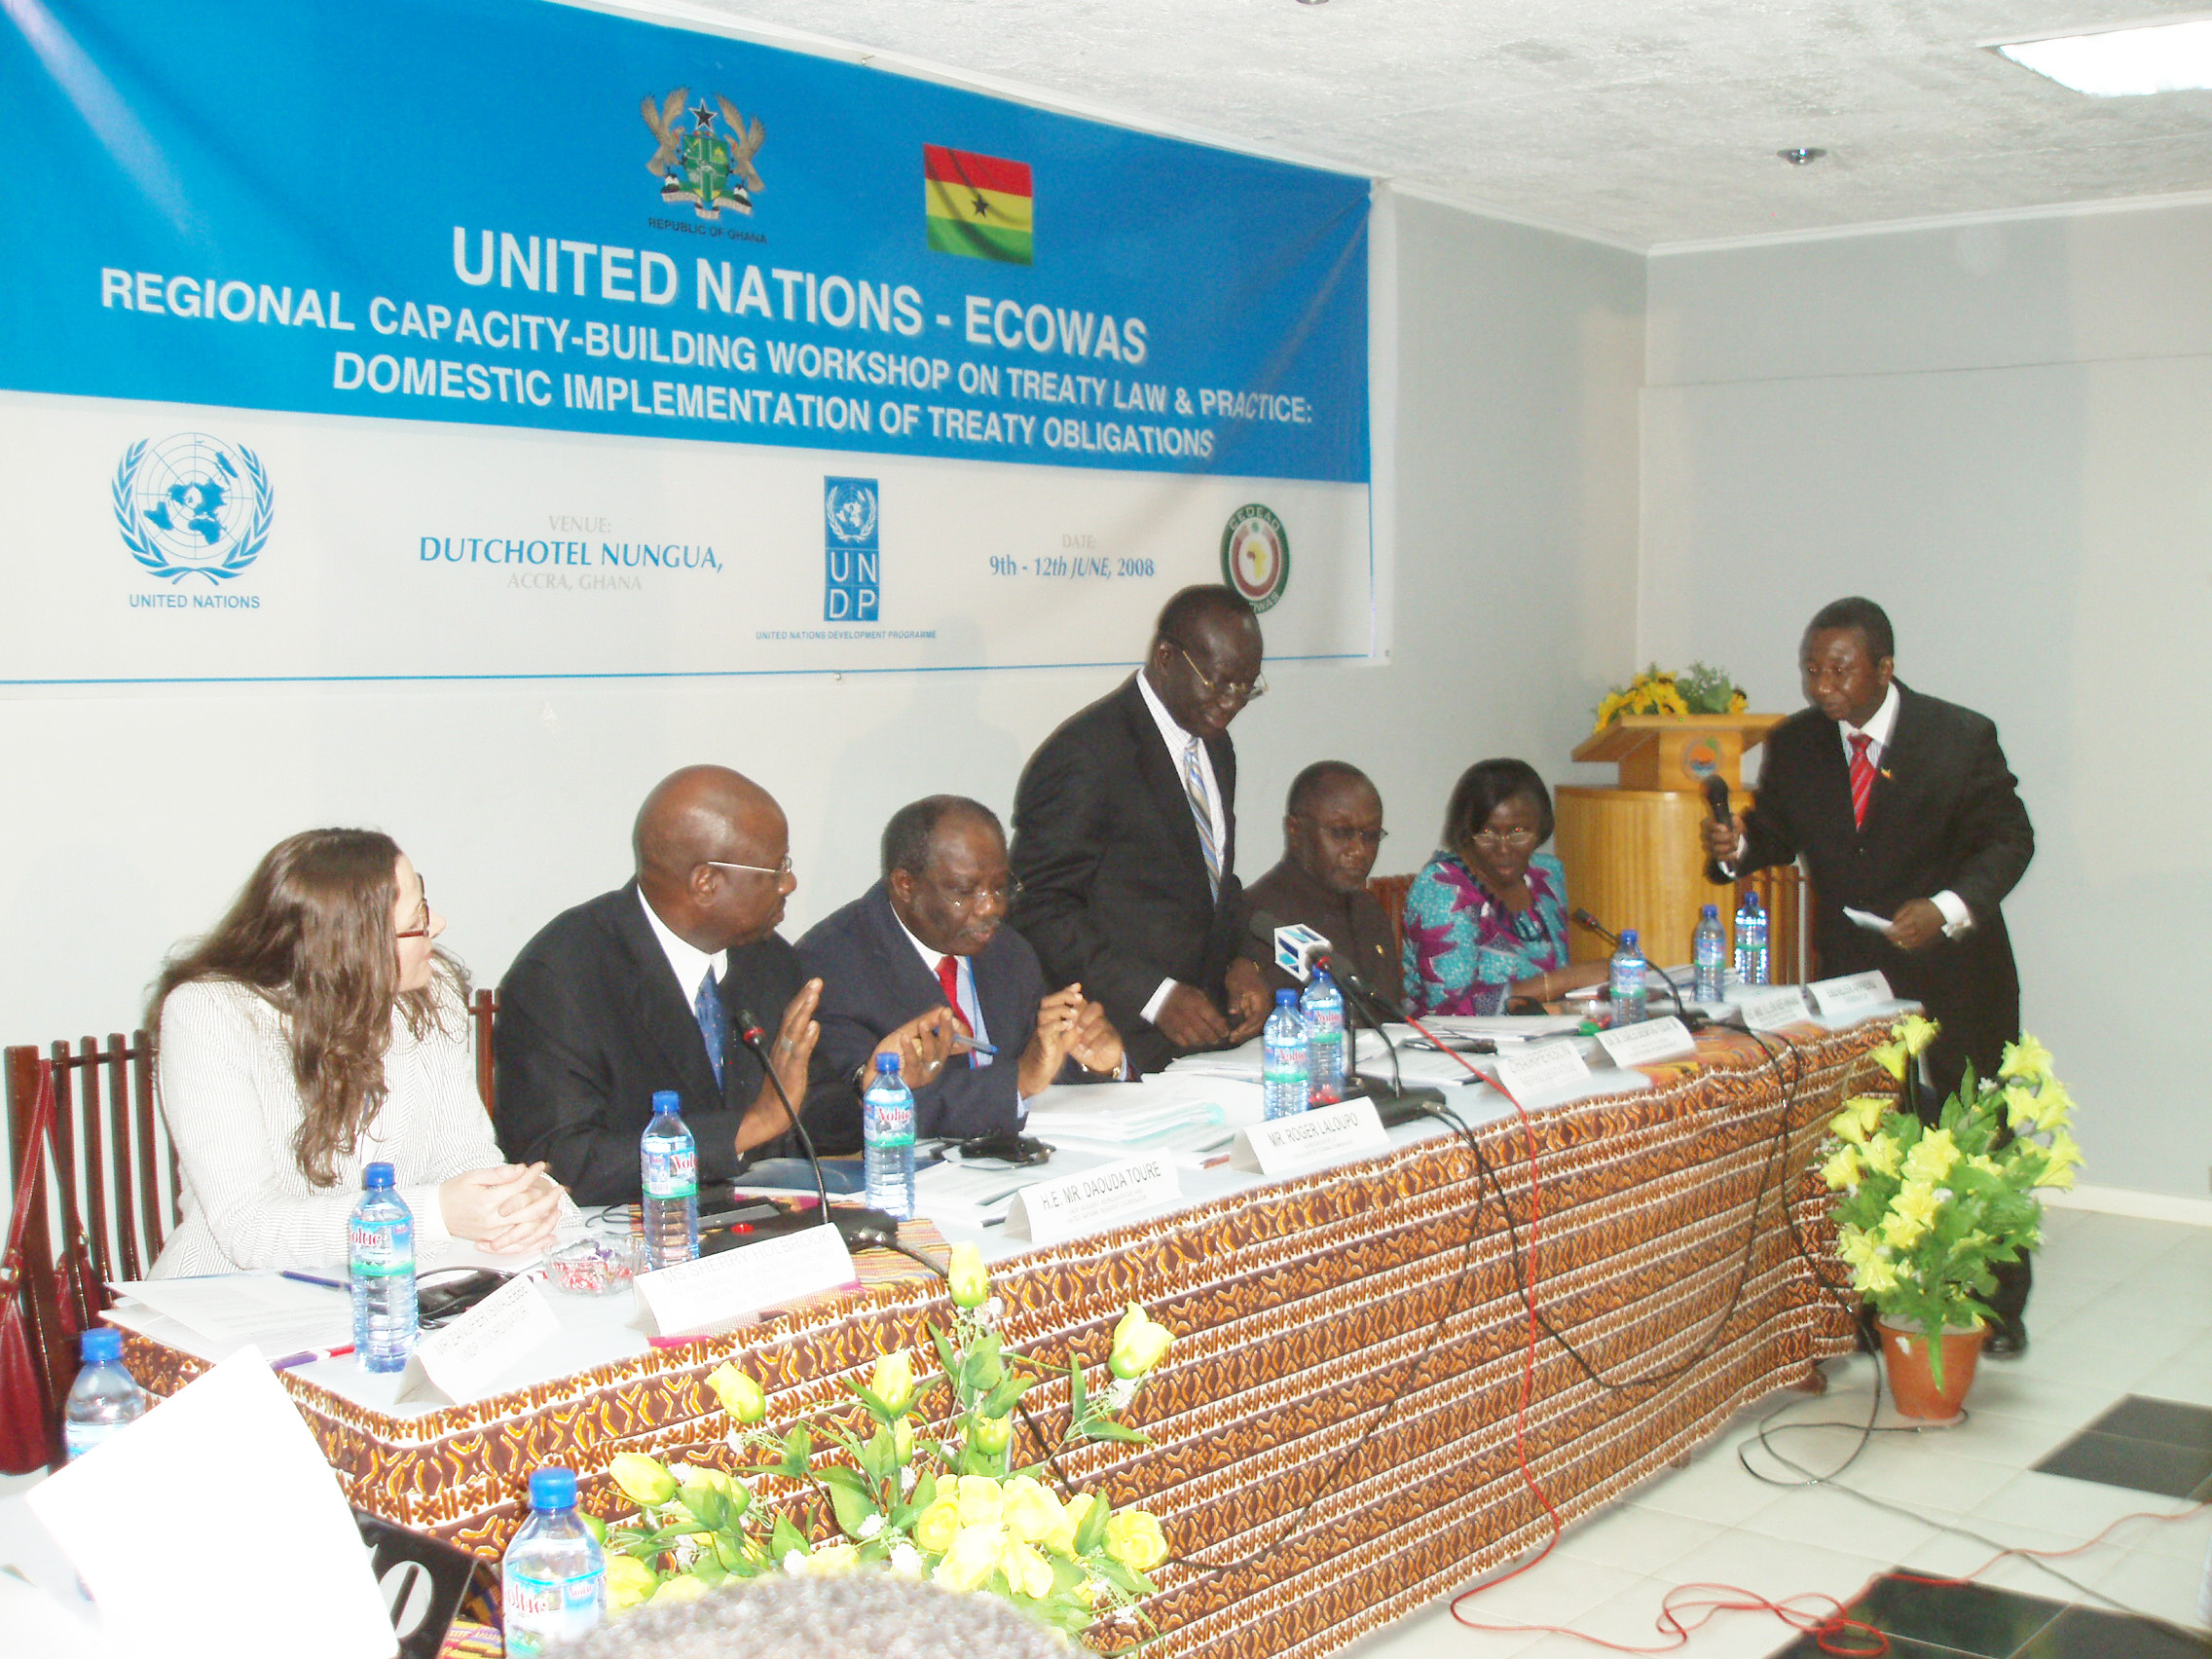 ECOWAS Regional Training Workshop